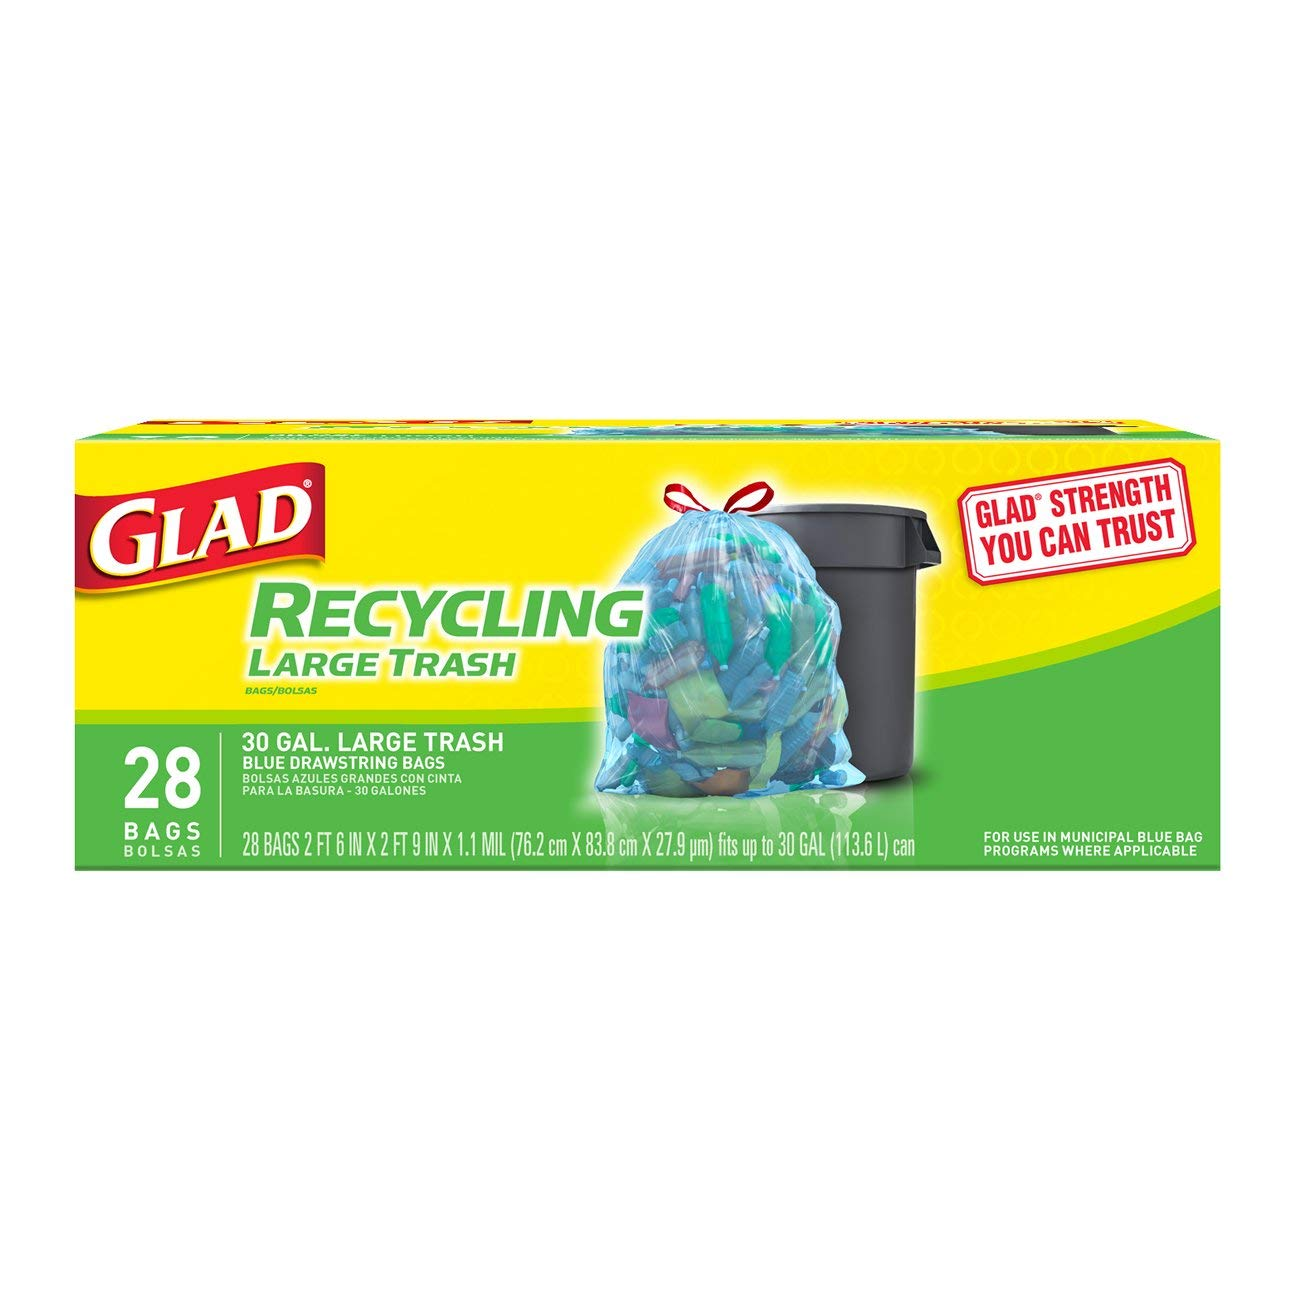 Glad Large Drawstring Recycling Bags - 30 Gallon Blue Trash Bag - 28 Count by Glad